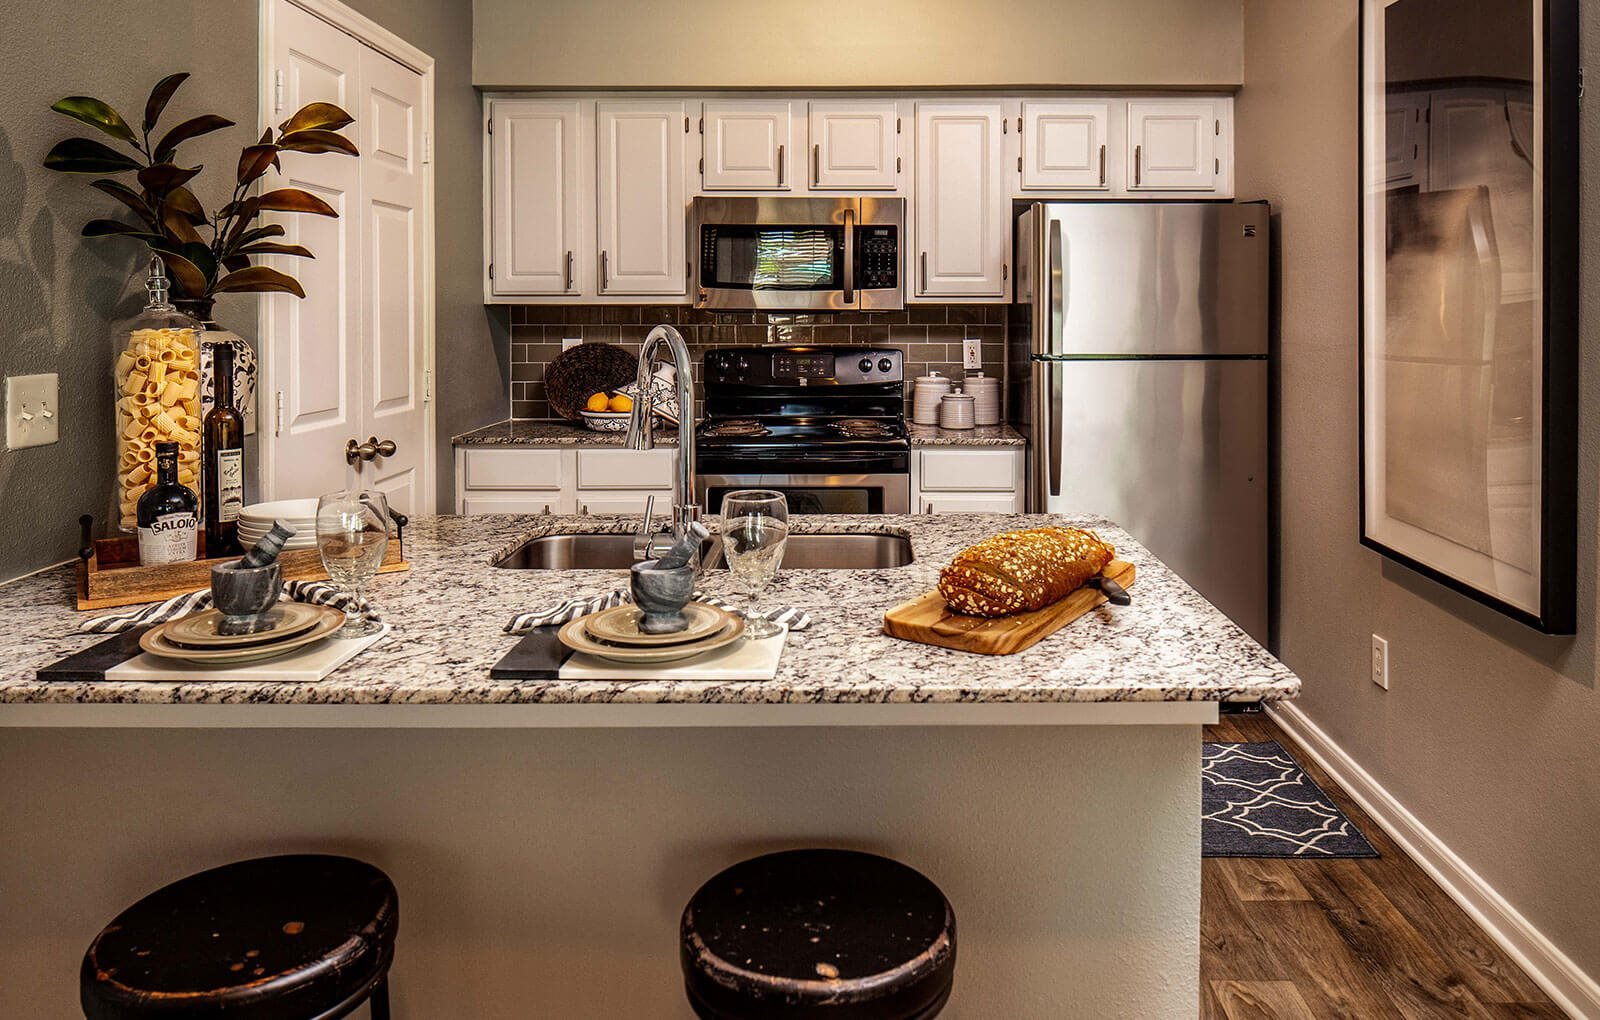 Furnished kitchen model with fridge and stove